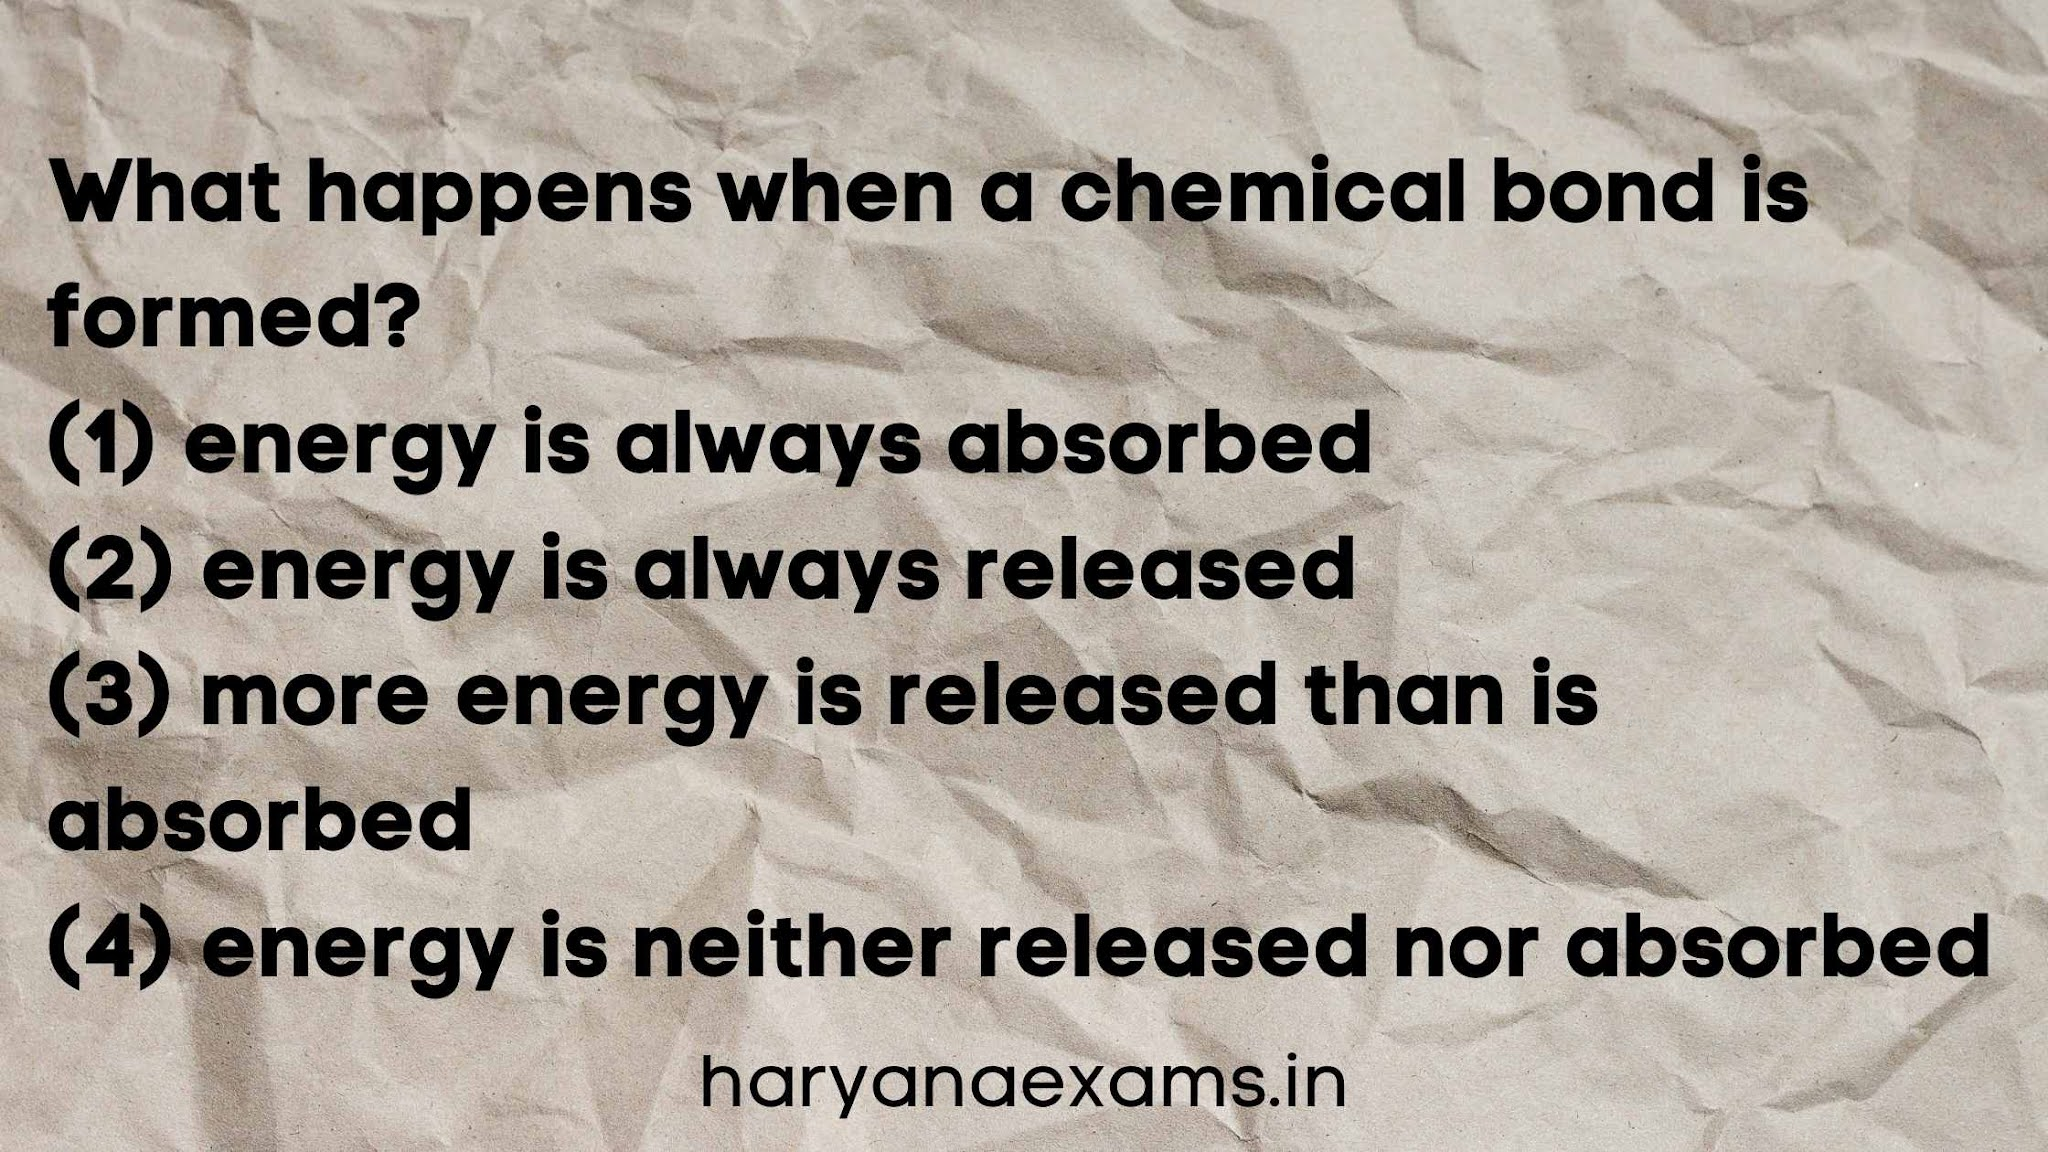 What happens when a chemical bond is formed?   (1) energy is always absorbed   (2) energy is always released   (3) more energy is released than is absorbed   (4) energy is neither released nor absorbed